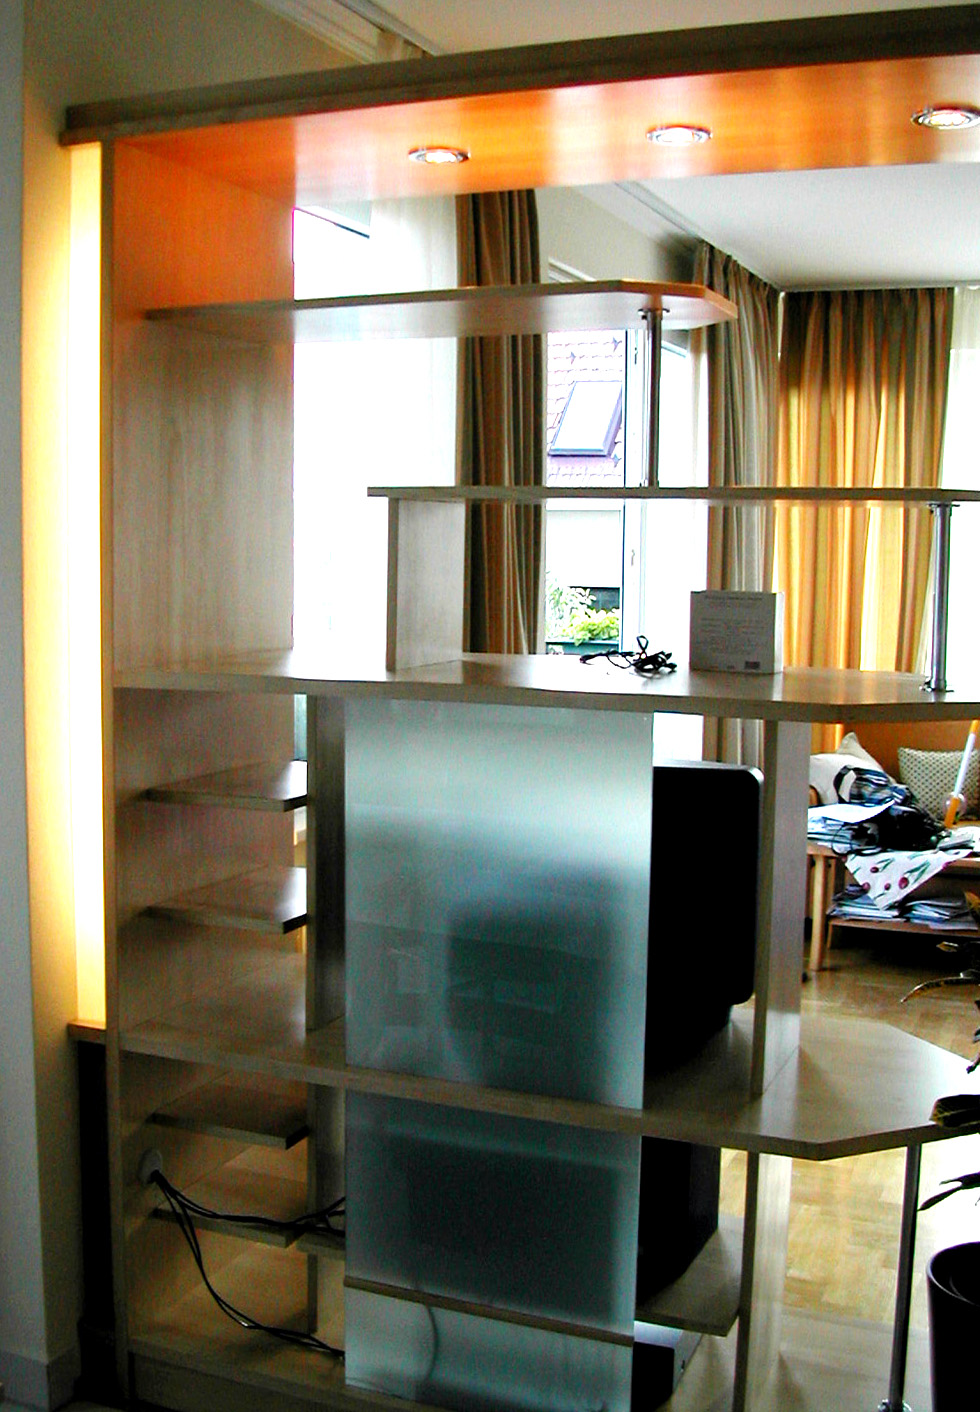 Room devider with TV stand